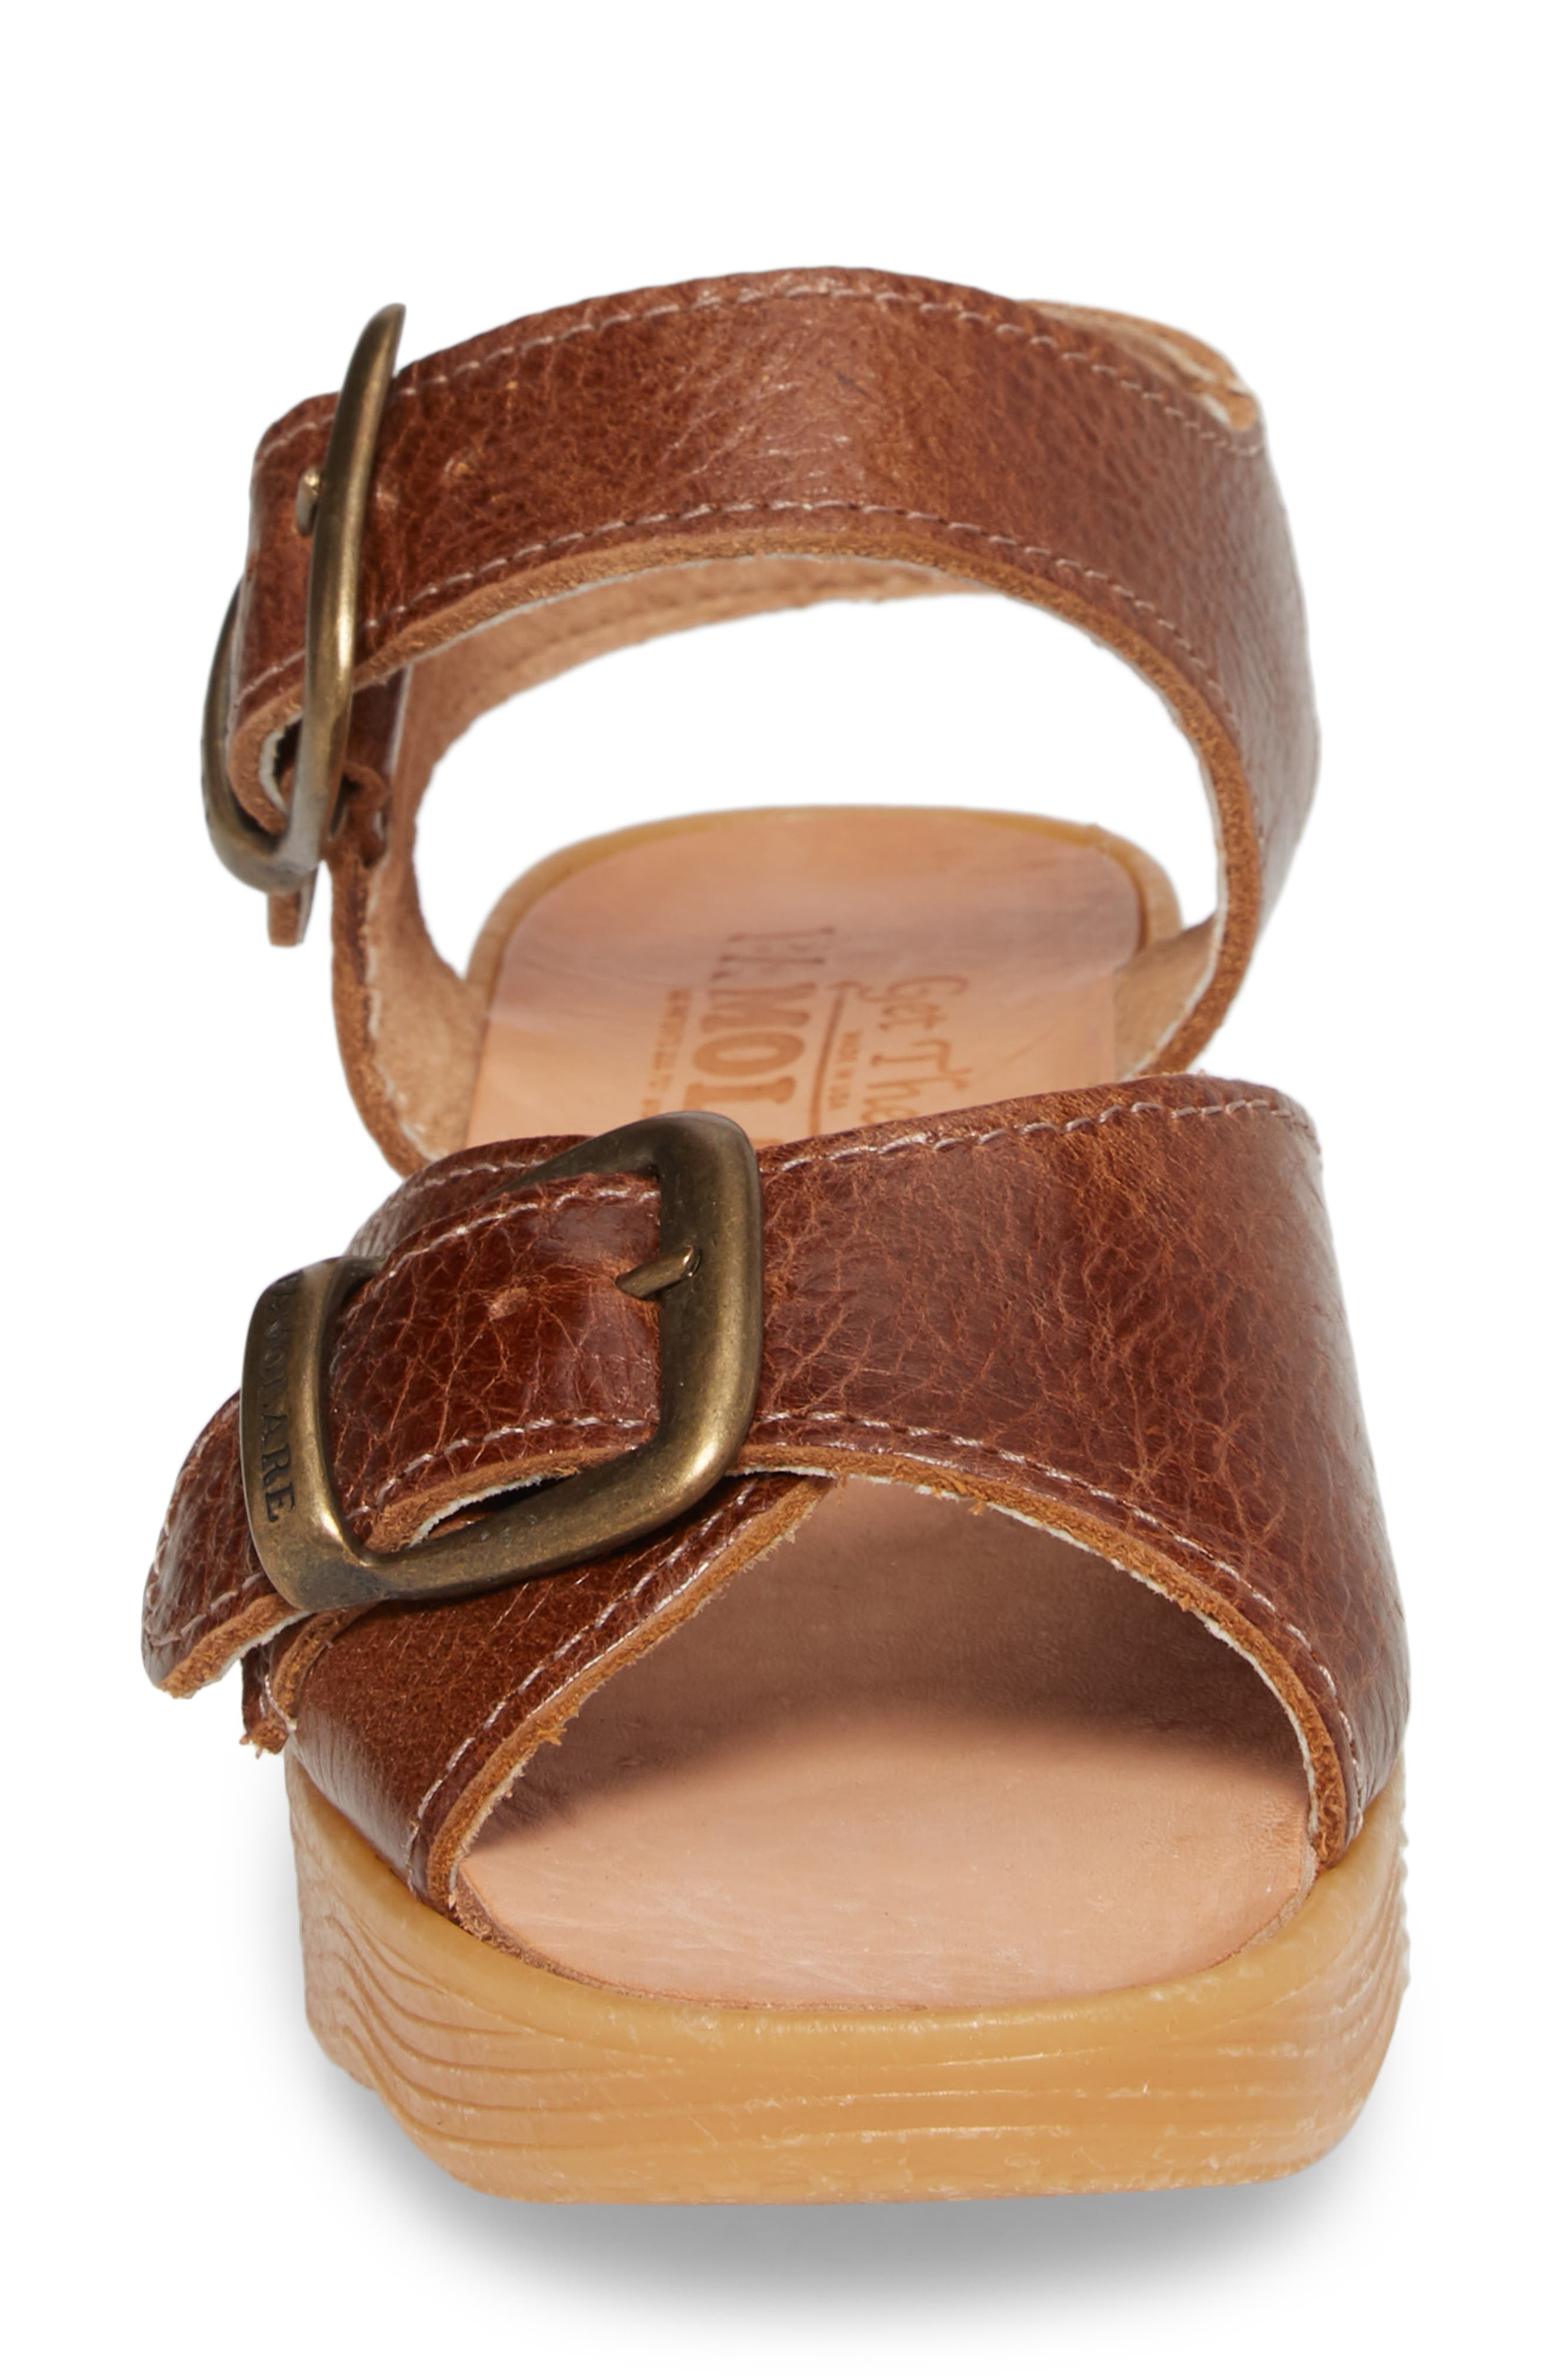 Double Play Platform Sandal,                             Alternate thumbnail 5, color,                             Earth Leather